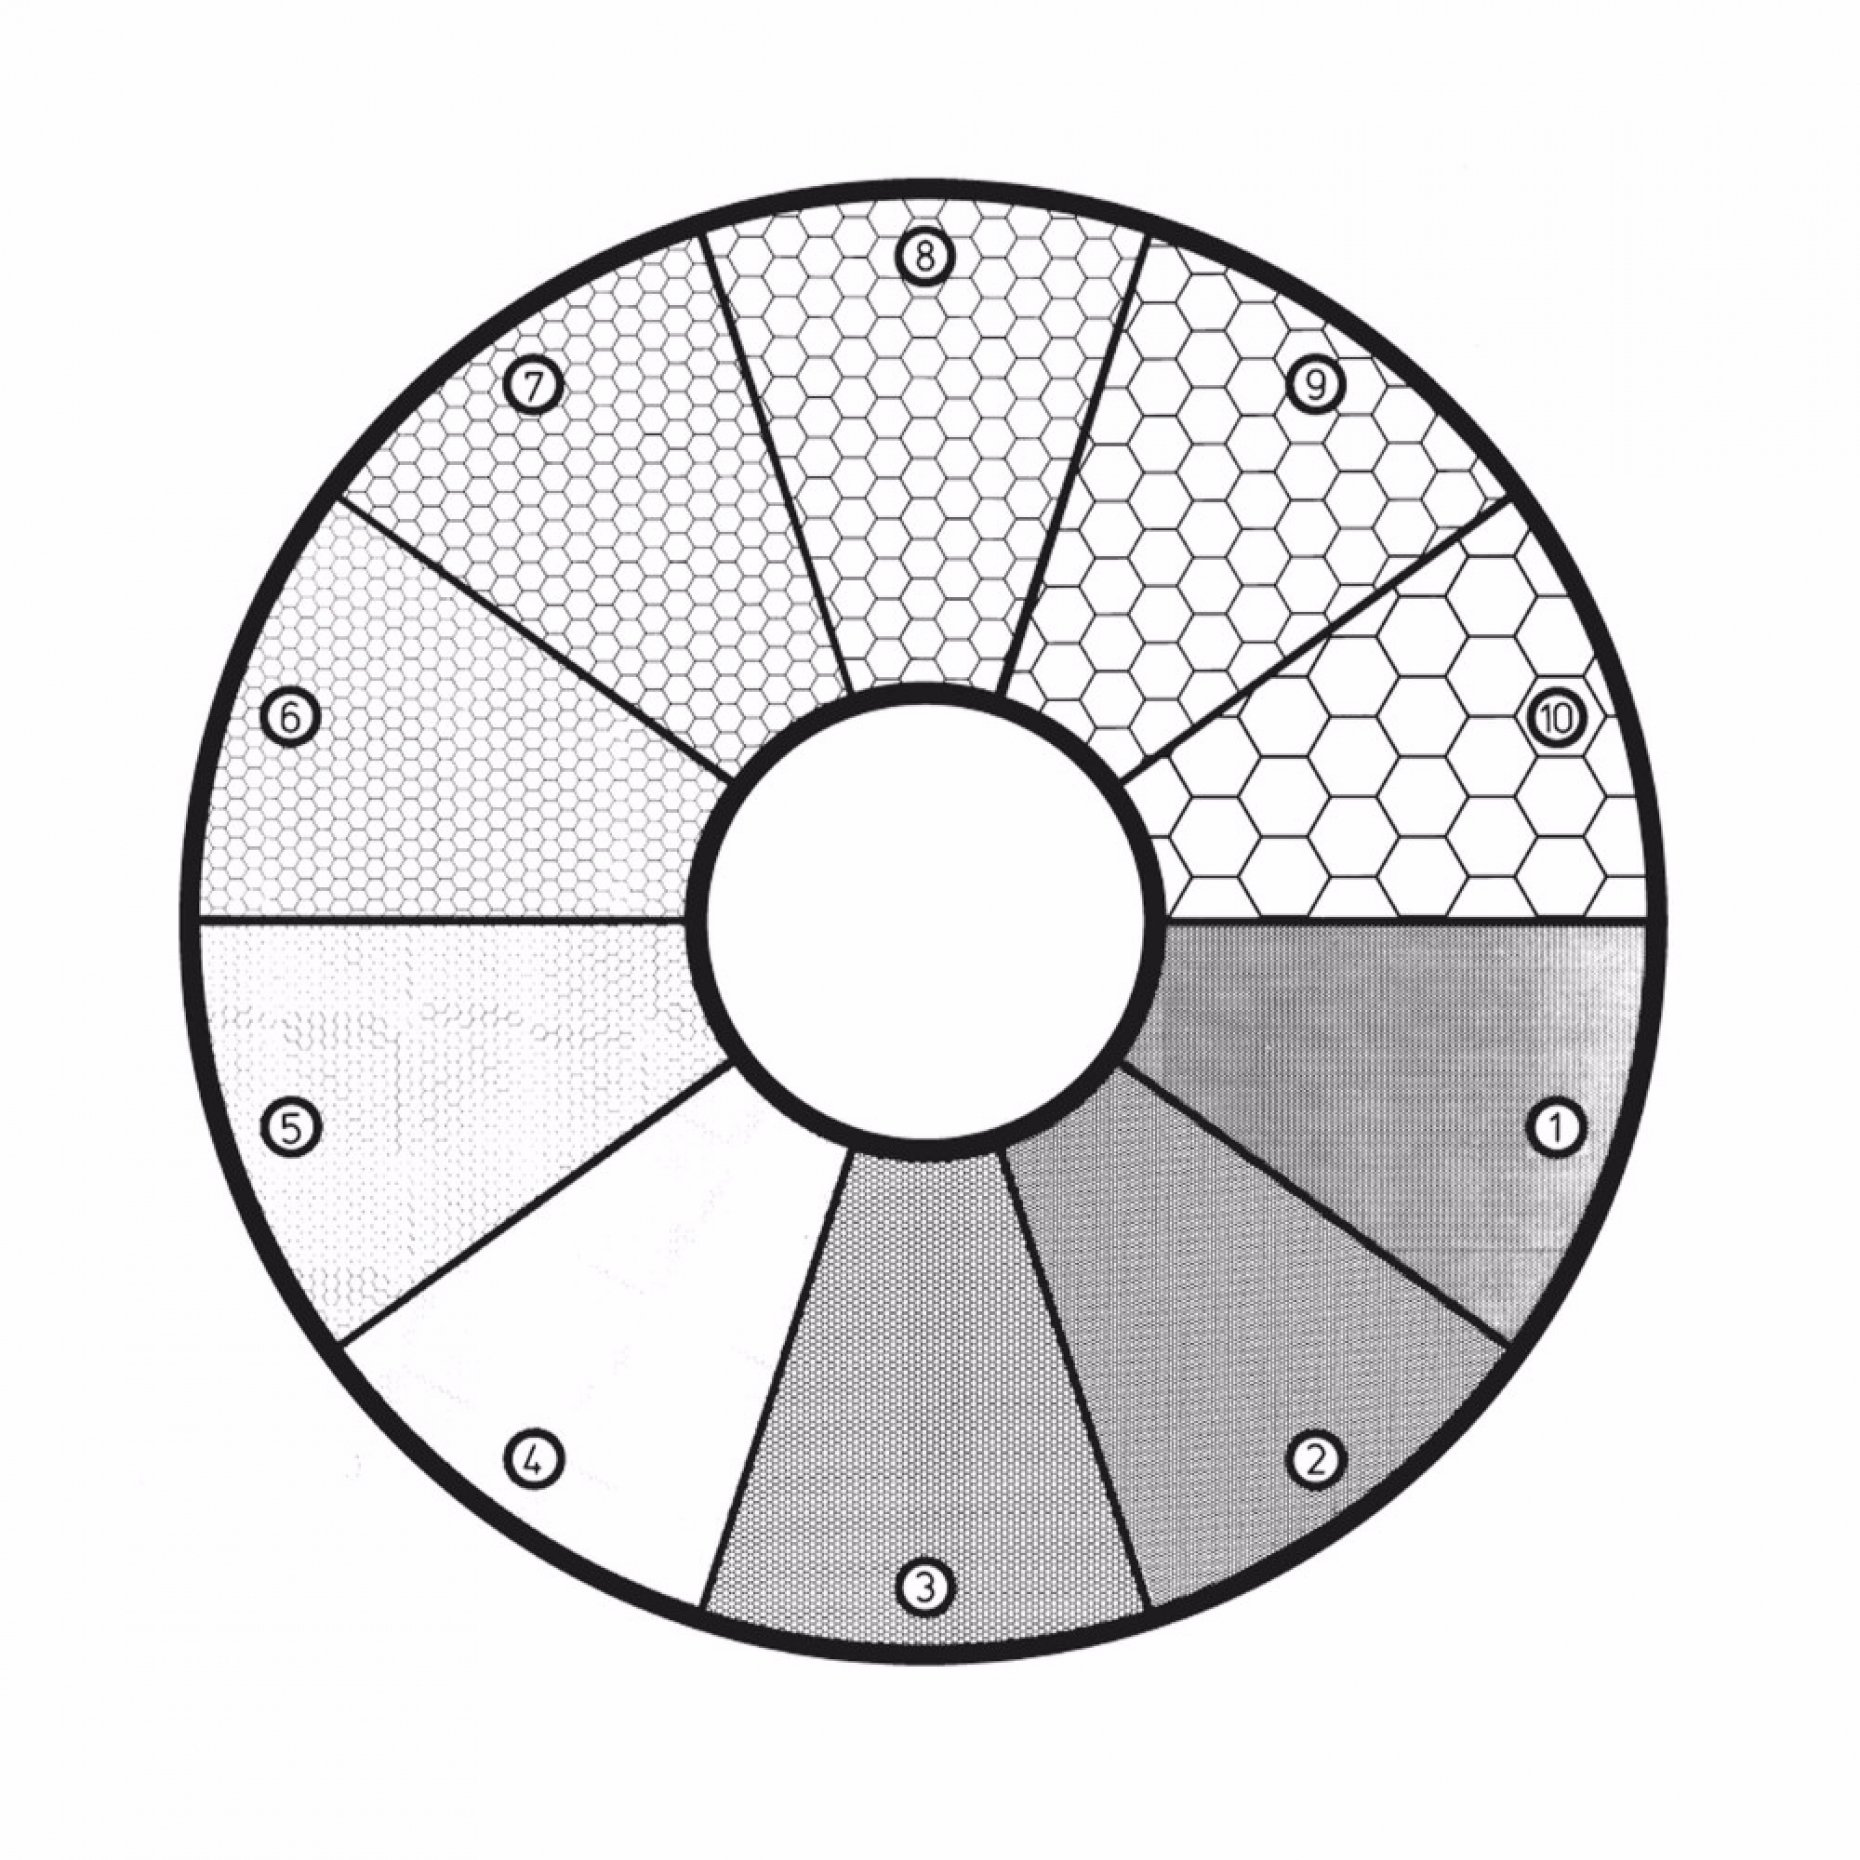 G46 ASTM E19-46 Grain Sizing Disc - Root 2 Pattern